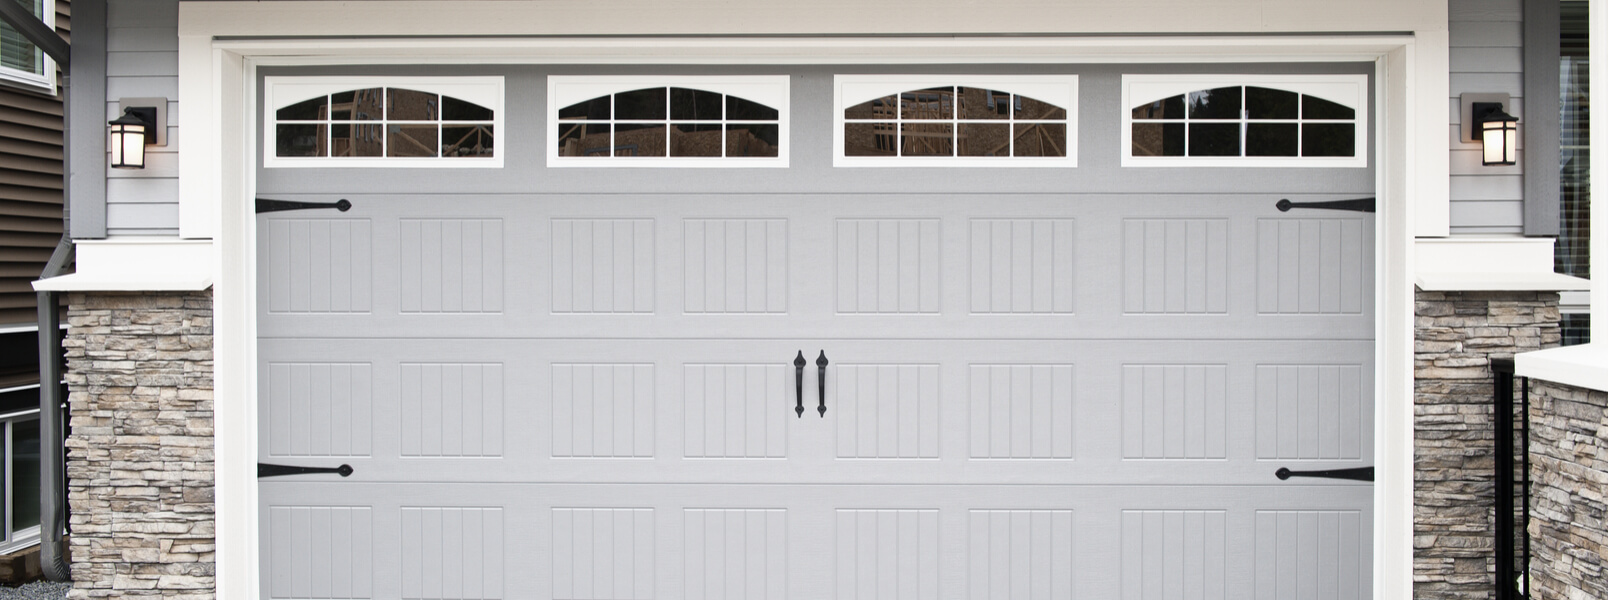 Adding a garage to your home | How much does it cost?